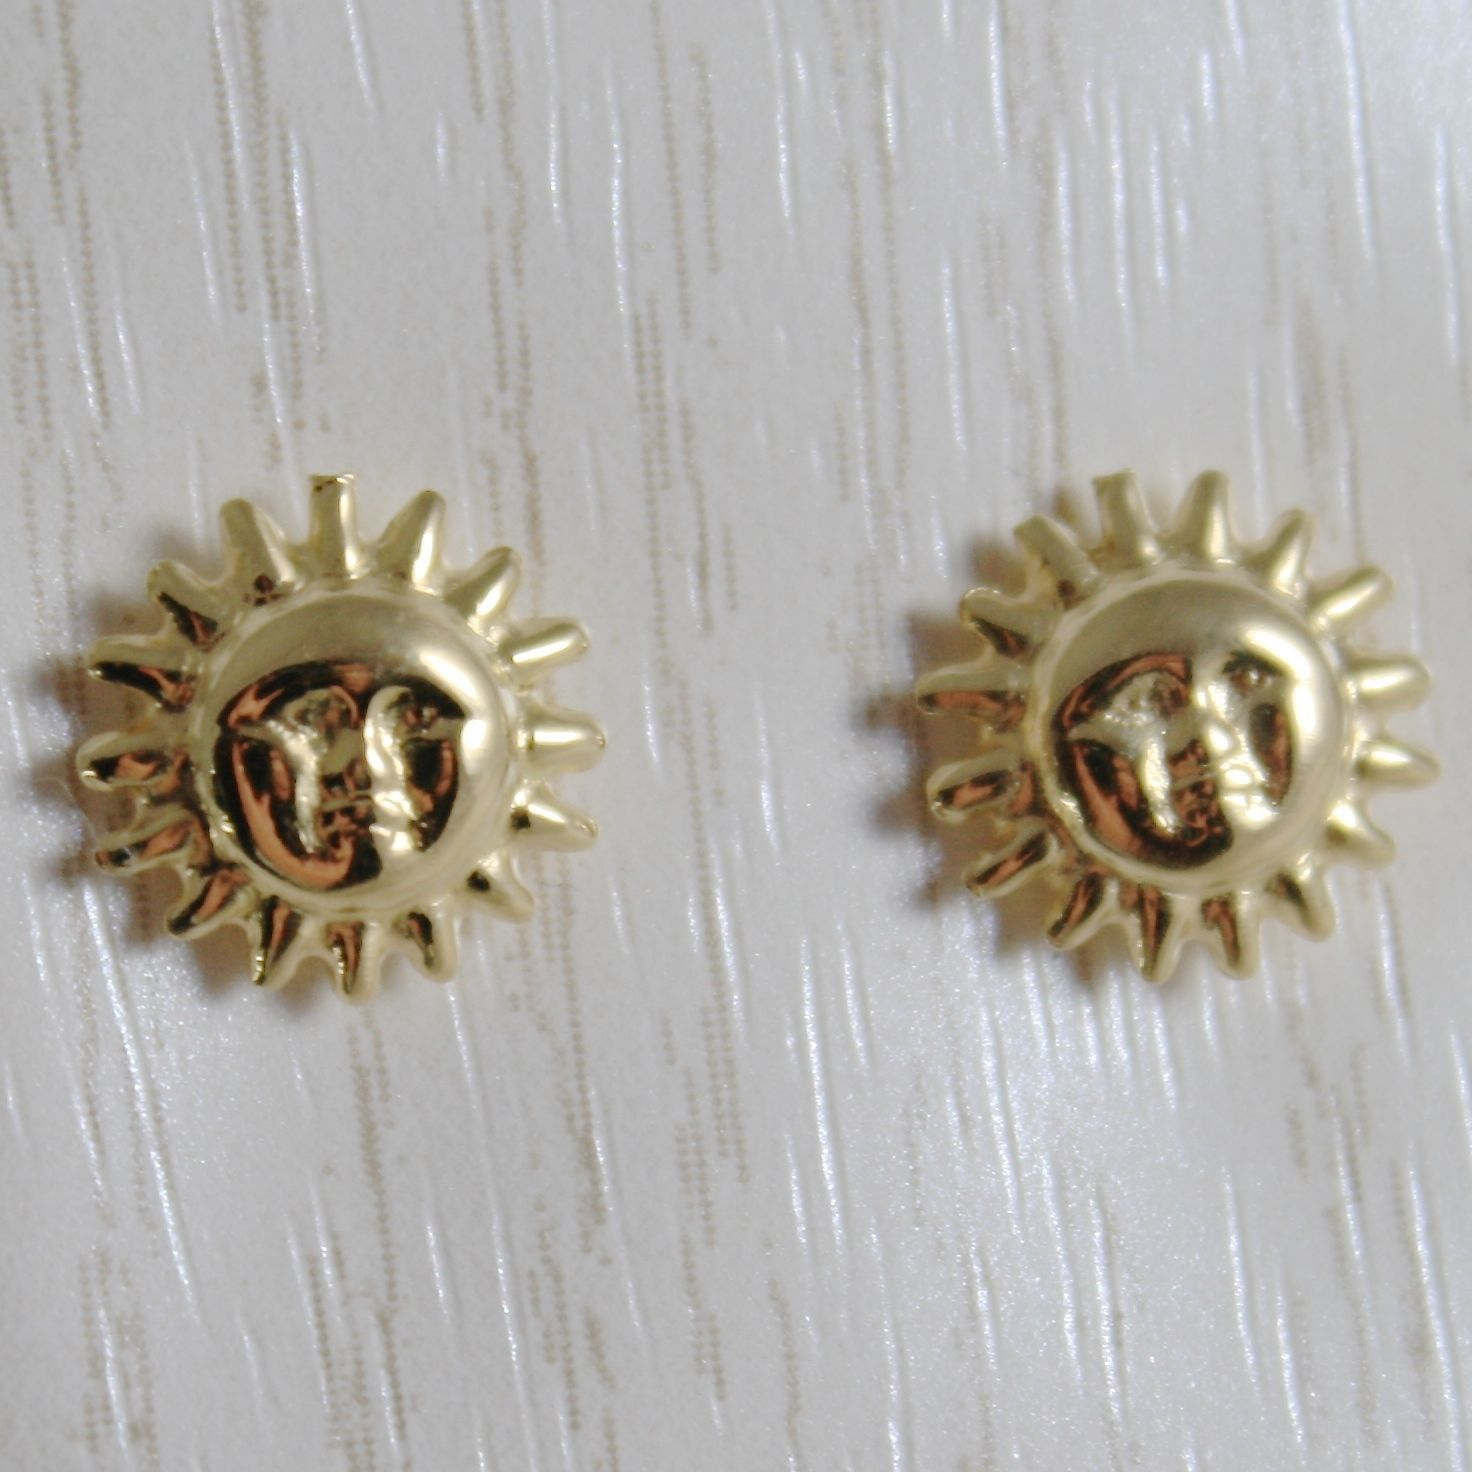 18K YELLOW GOLD EARRINGS MINI SUN BRIGHT & POLISHED FOR KIDS CHILD MADE IN ITALY